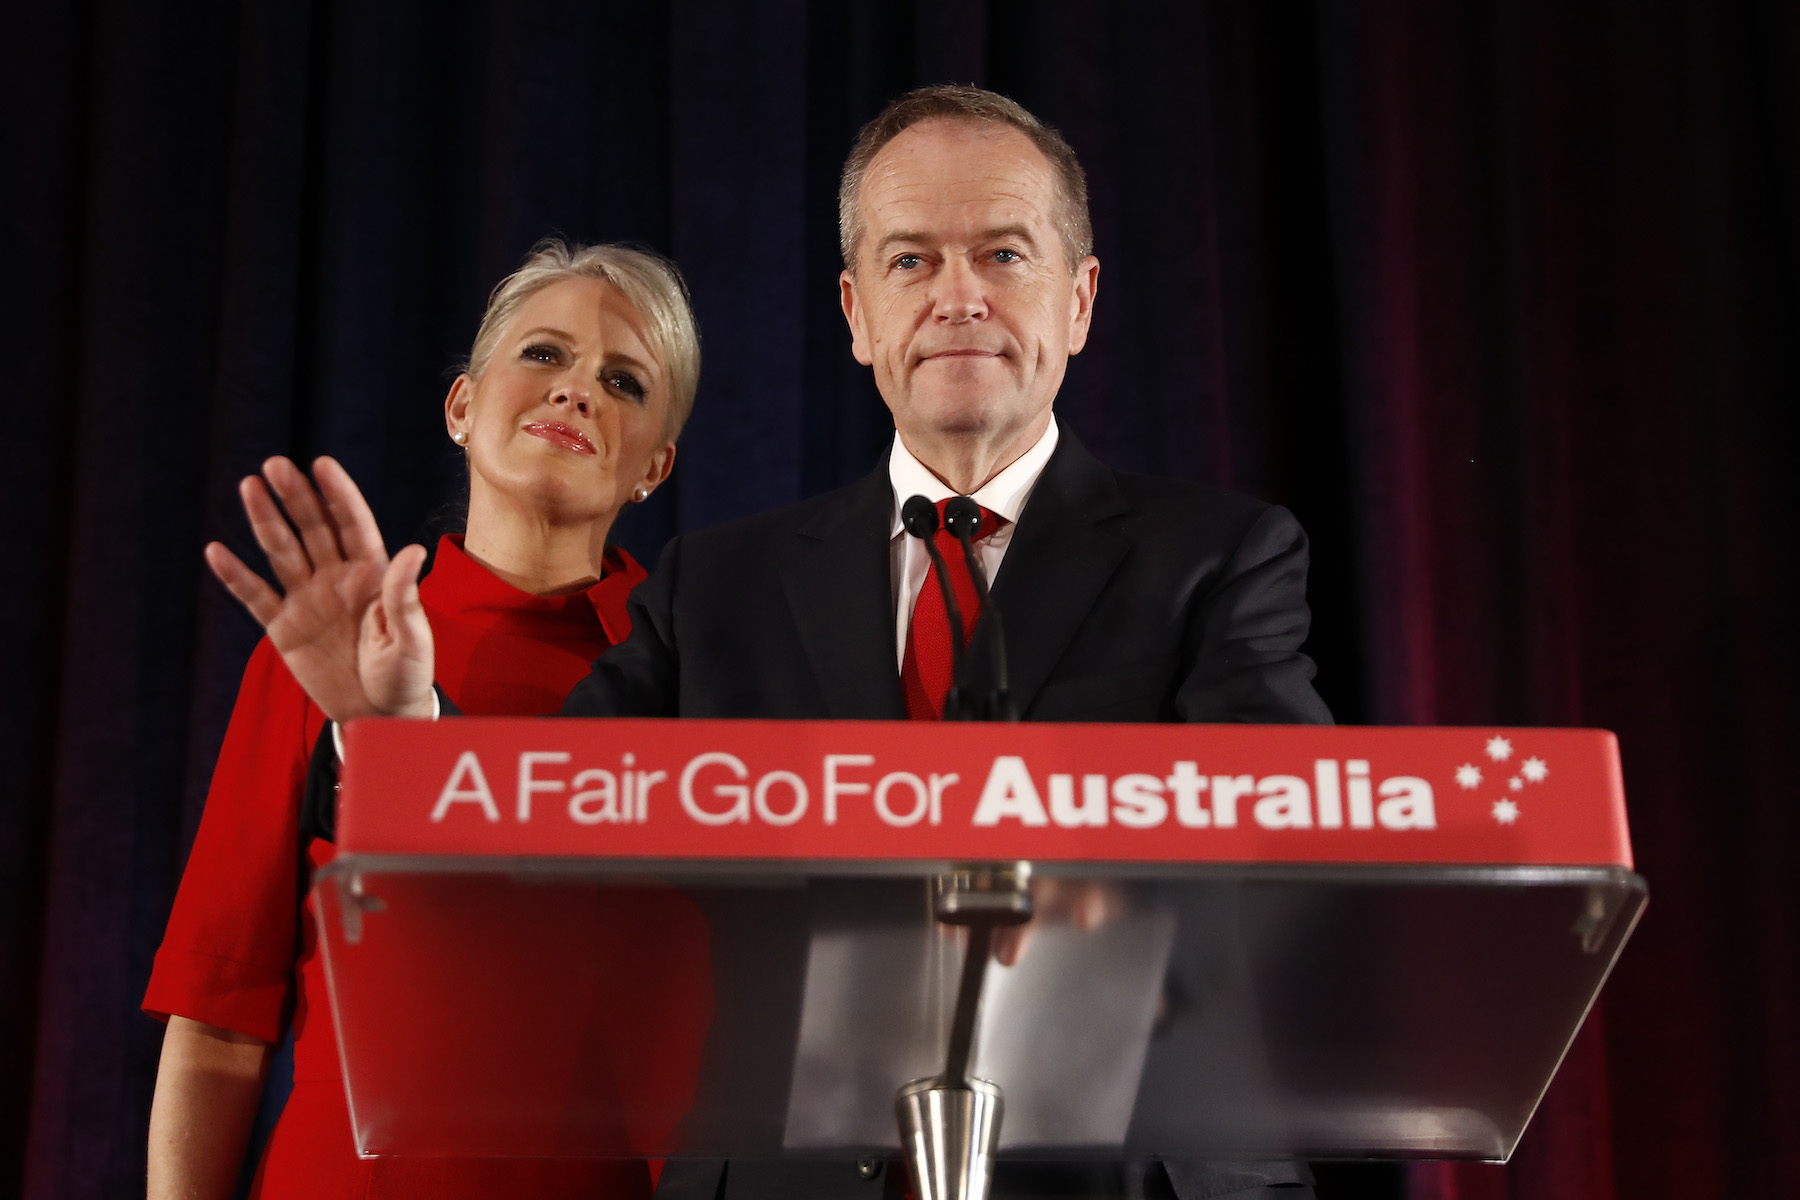 Bill Shorten Concedes Defeat In 2019 Australian Federal Election